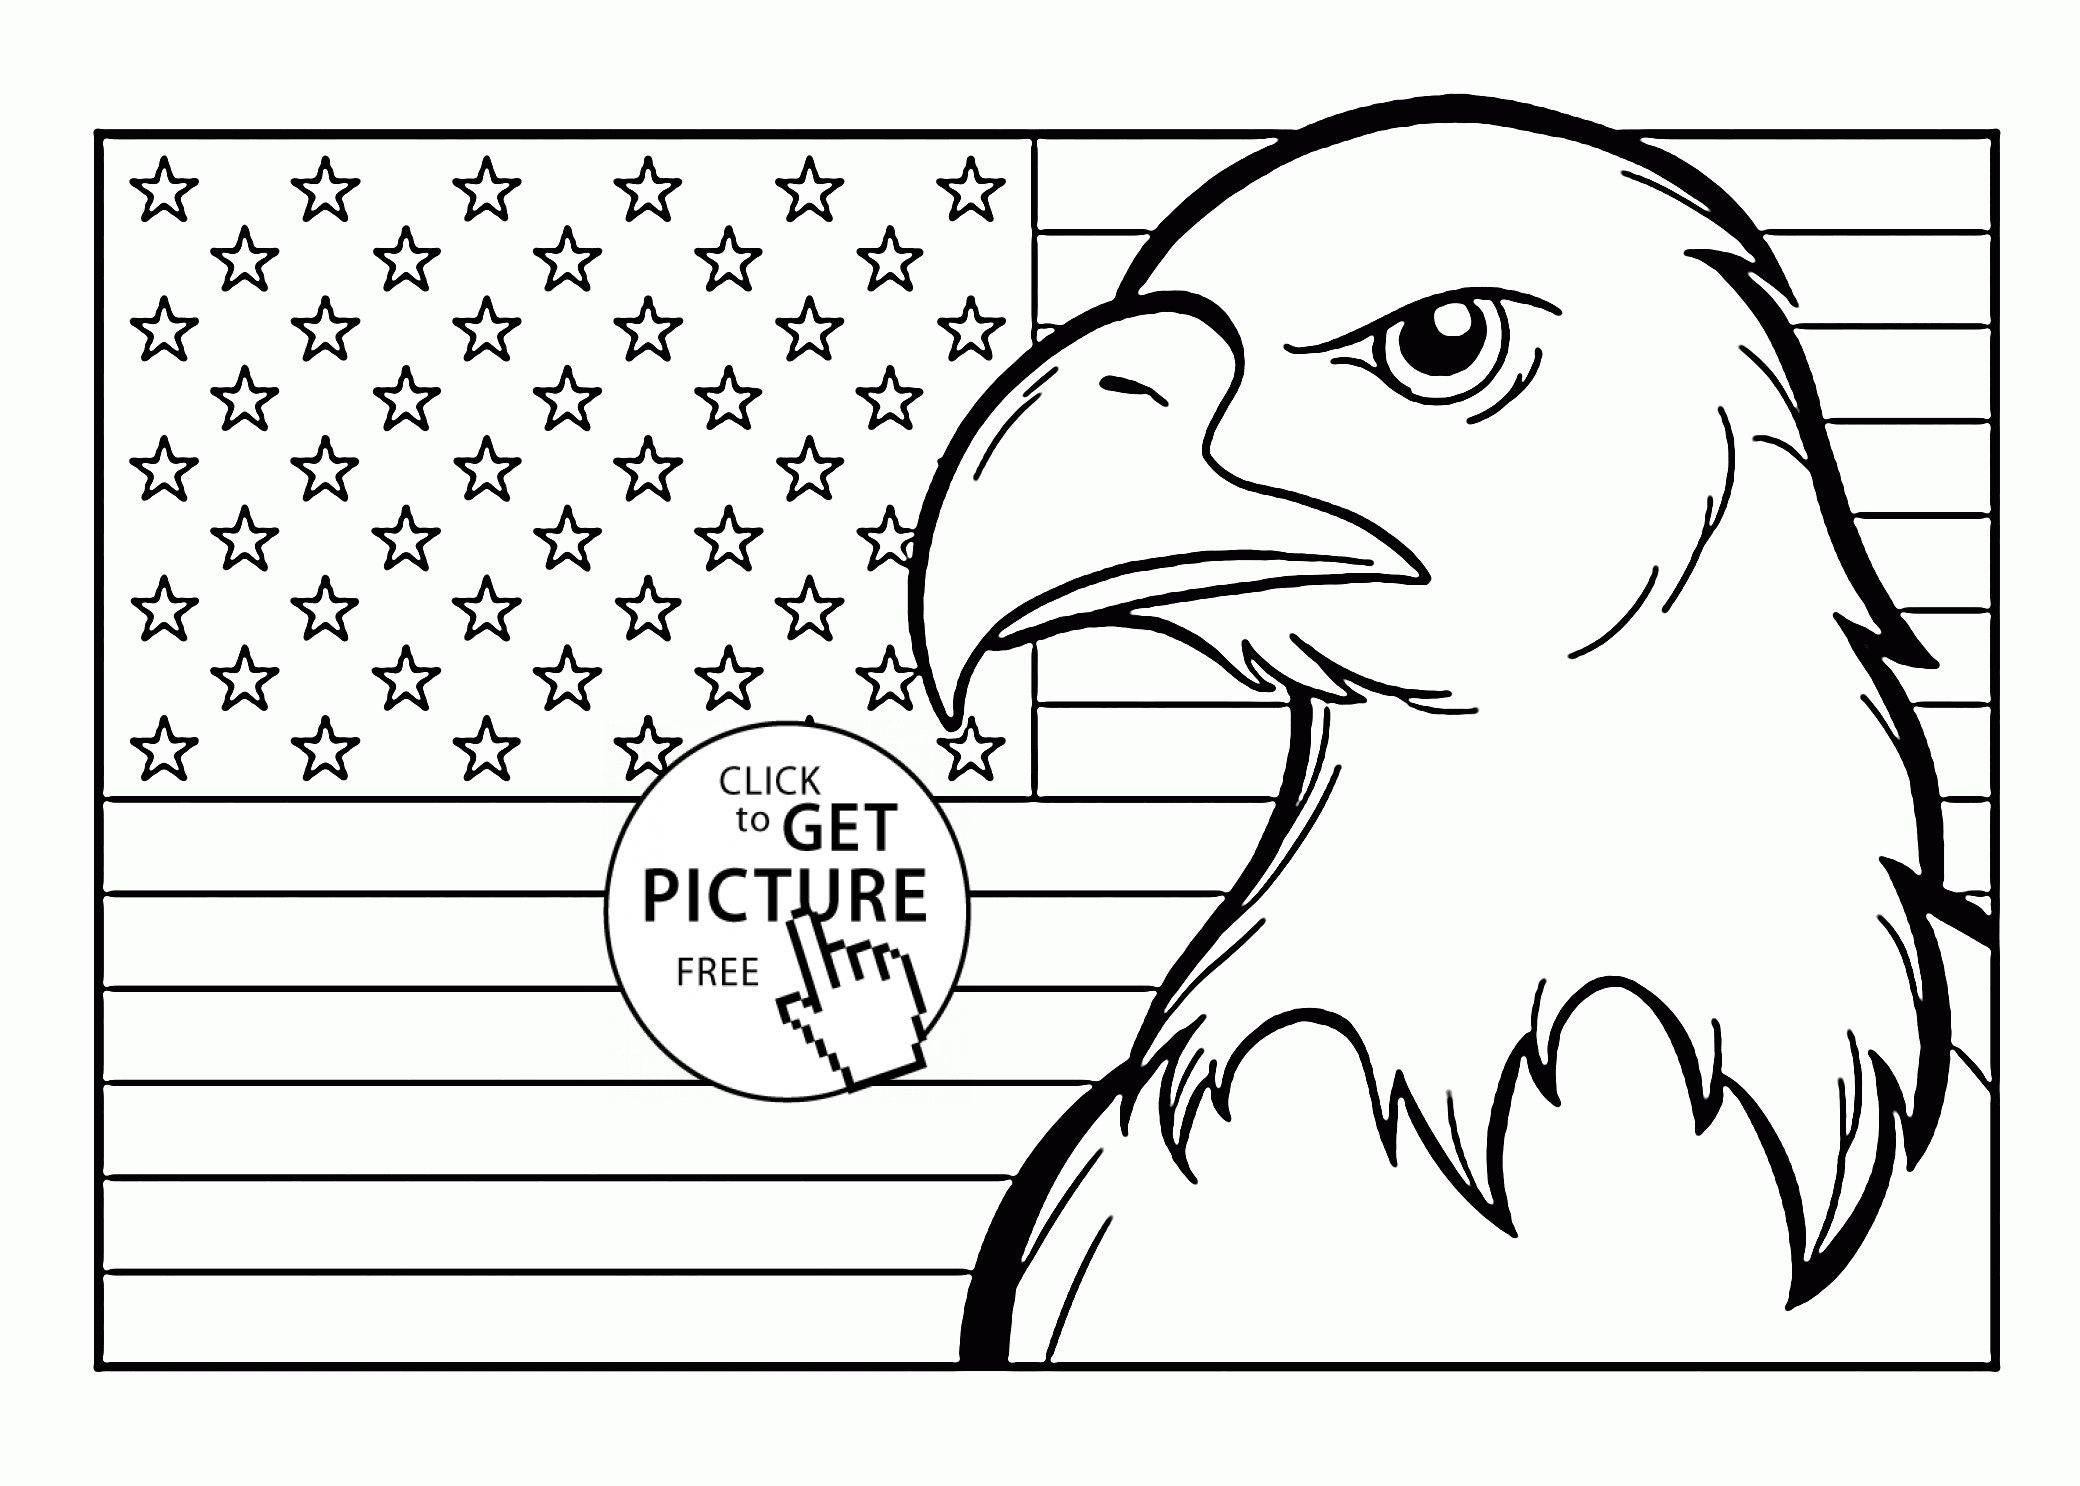 4th of july coloring pages 27 fourth of july coloring pages images free coloring 5824